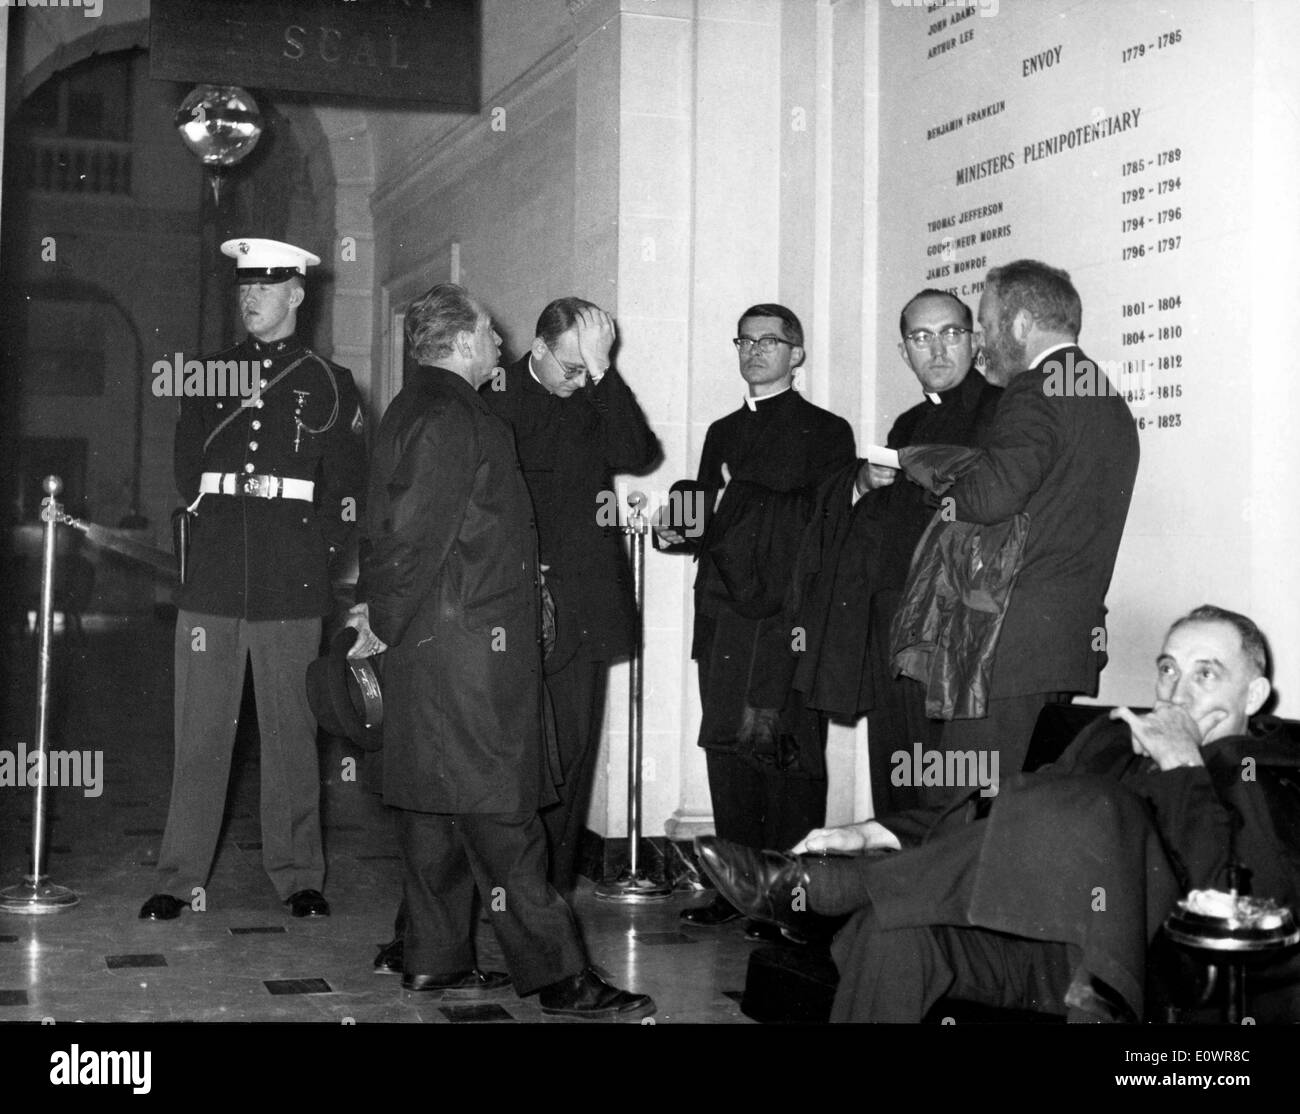 Nov 23, 1963; Paris, France; The American priests from Paris talking about the tragical assasination of President Kennedy at the U.S. Embassy. - Stock Image